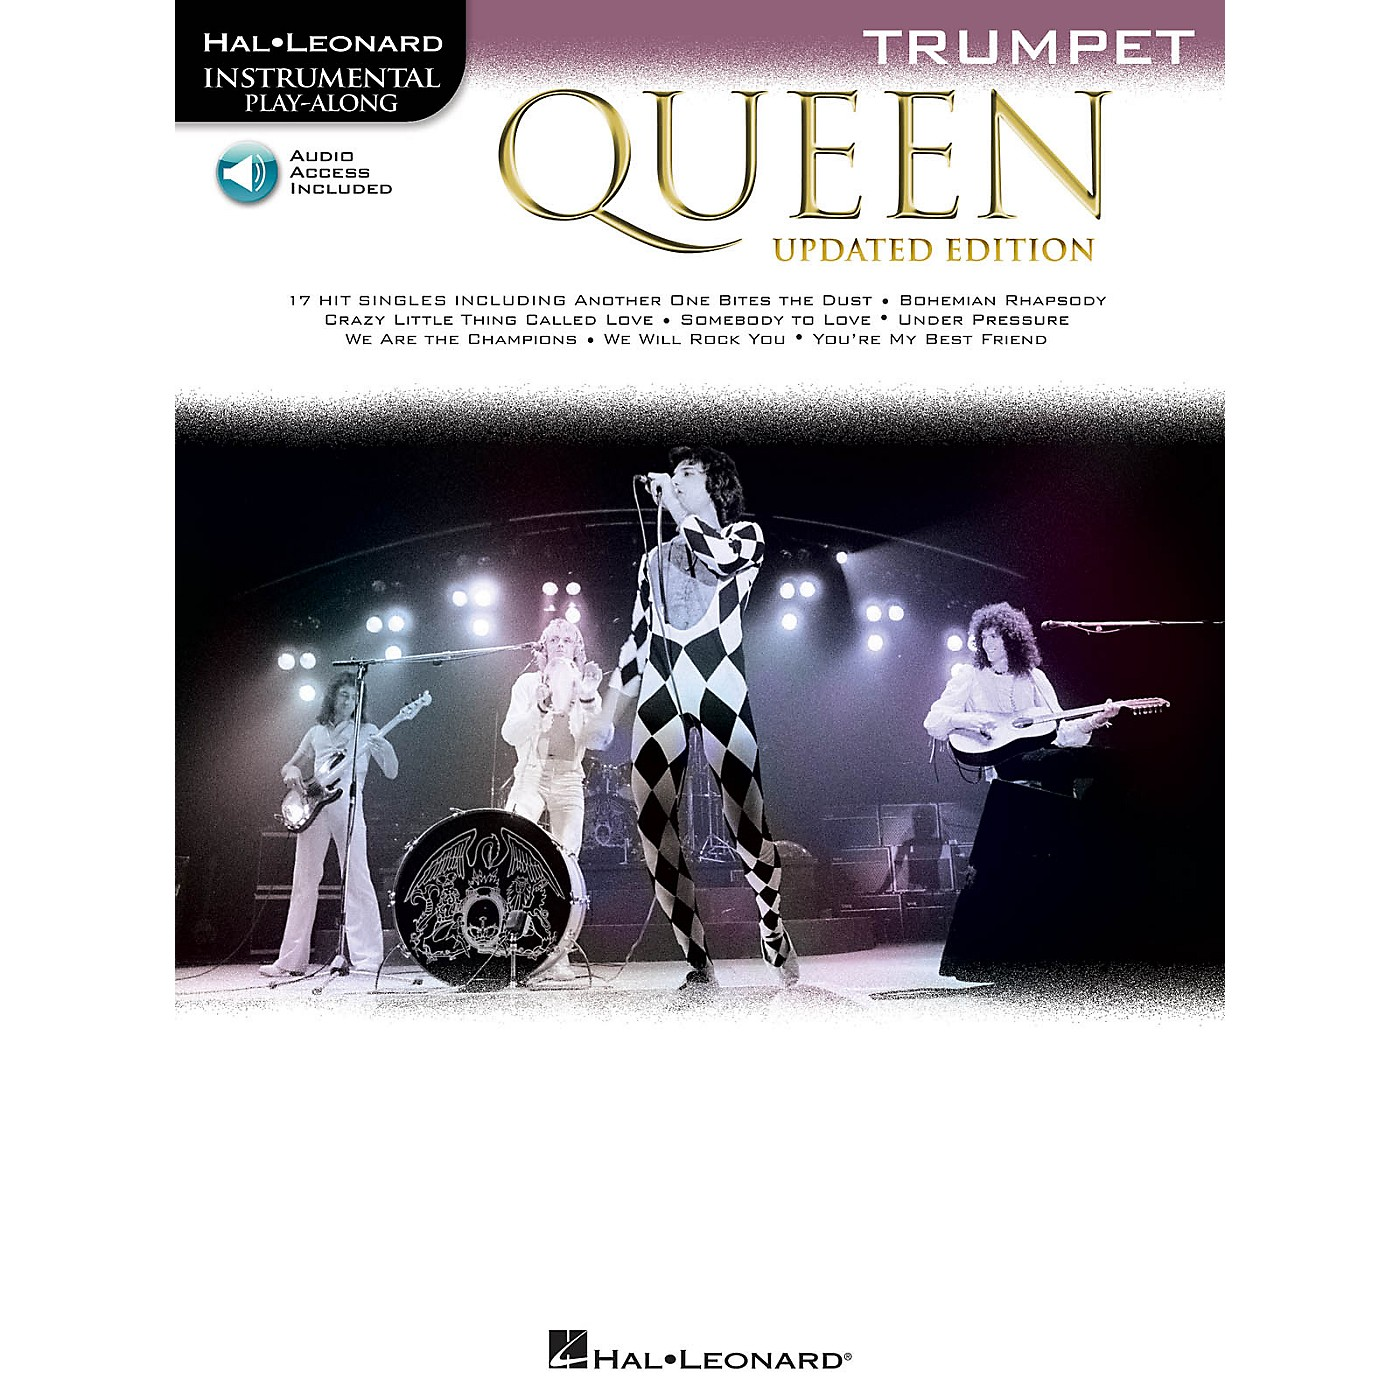 Hal Leonard Queen - Updated Edition Trumpet Instrumental Play-Along Songbook Book/Audio Online thumbnail